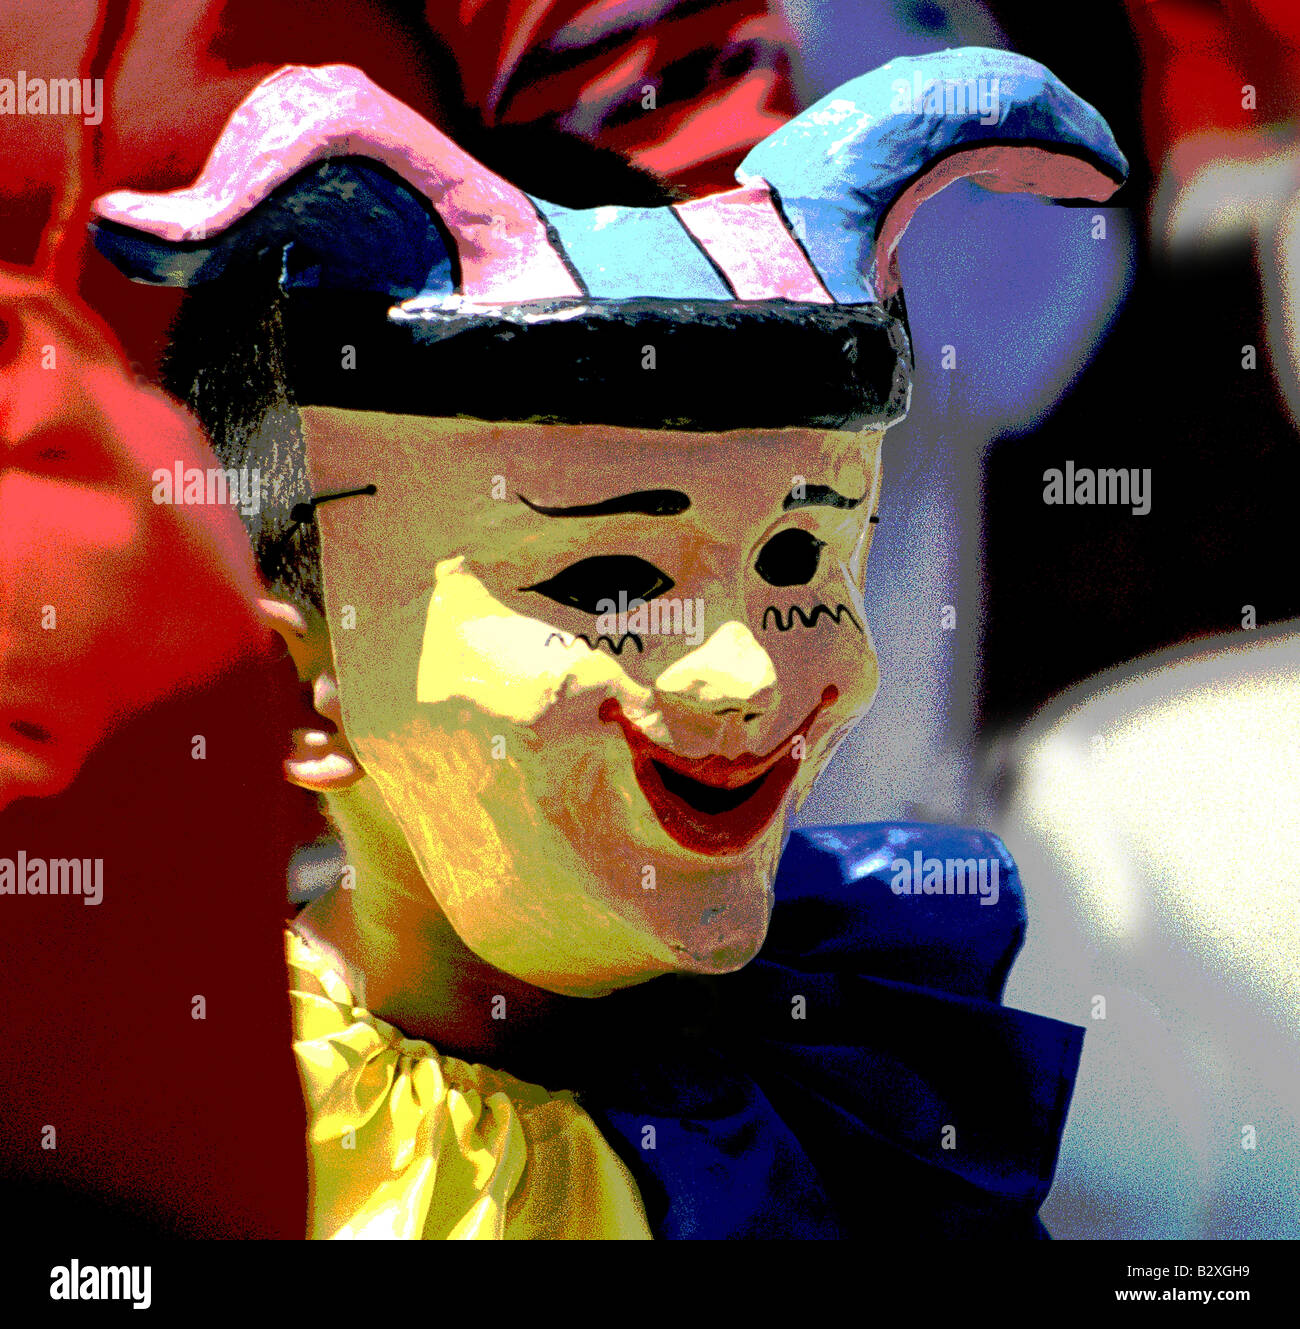 Photo digital illustration of parade goer in multicolored costume and paper maché mask at fiesta festival parade - Stock Image